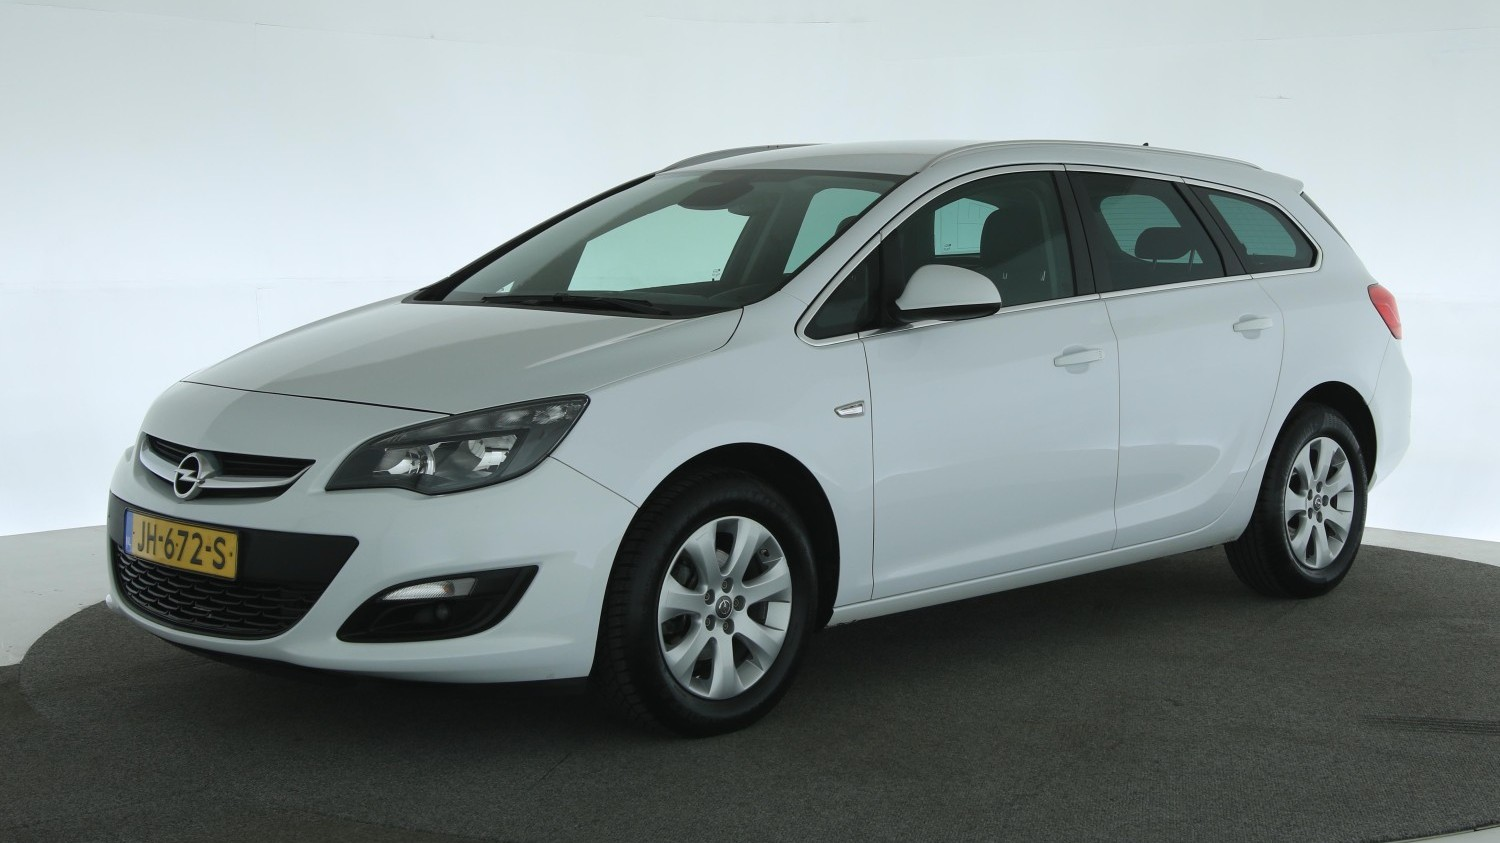 Opel Astra Station 2016 JH-672-S 1